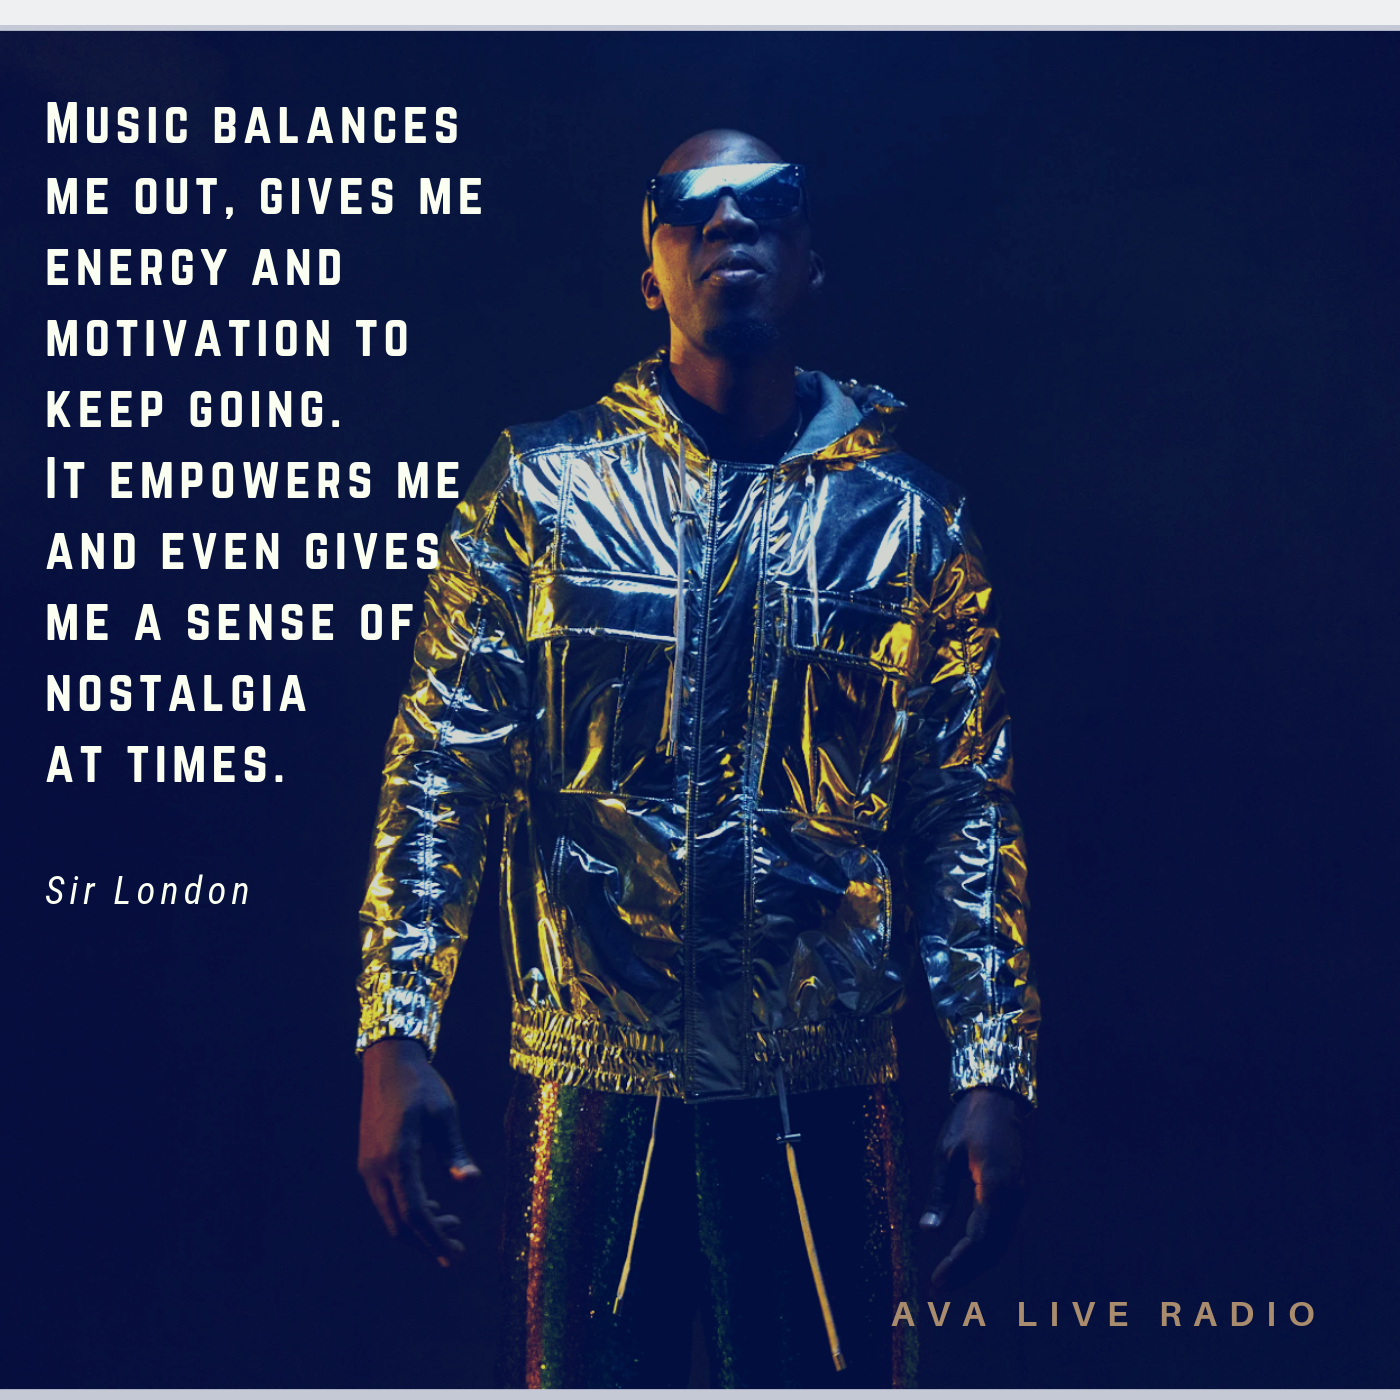 Sir London music quotes avaliveradio.png